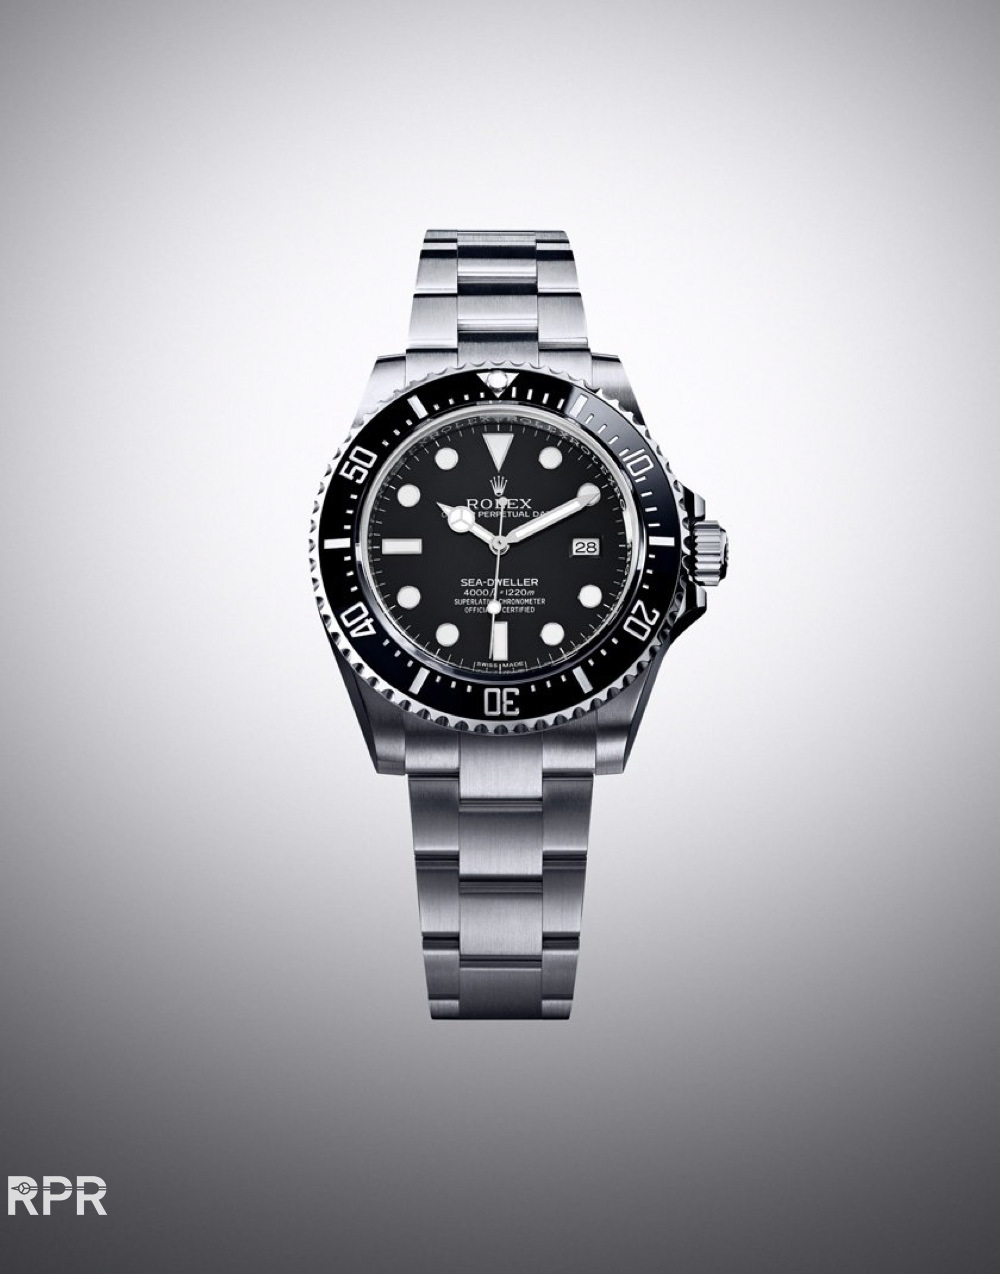 RPR_sea_dweller_116600_5.jpg